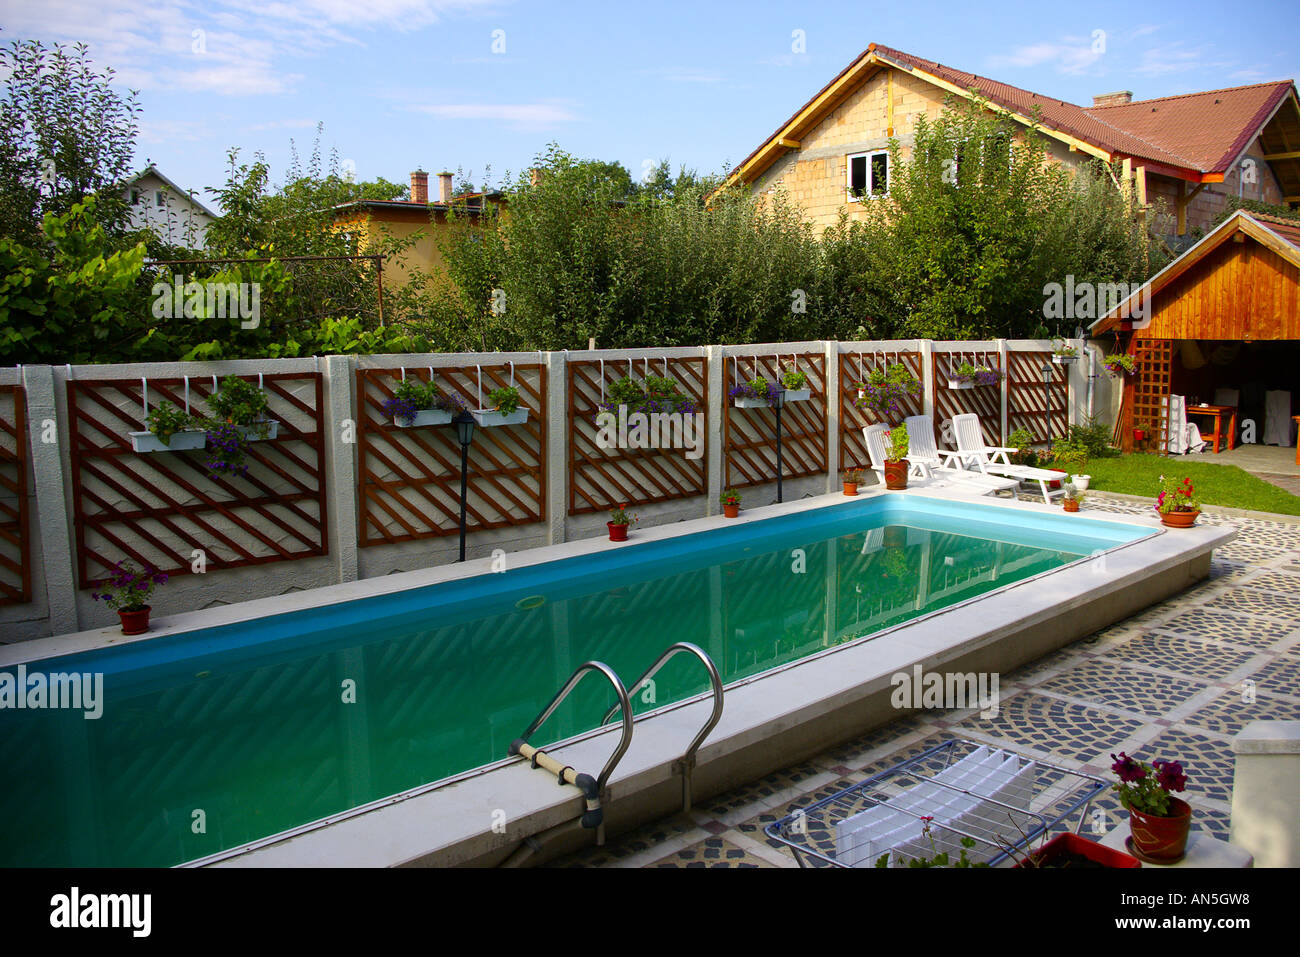 Well managed swimming pool at casa moraru a nice clean private hotel stock photo royalty free for Nice hotels with swimming pool